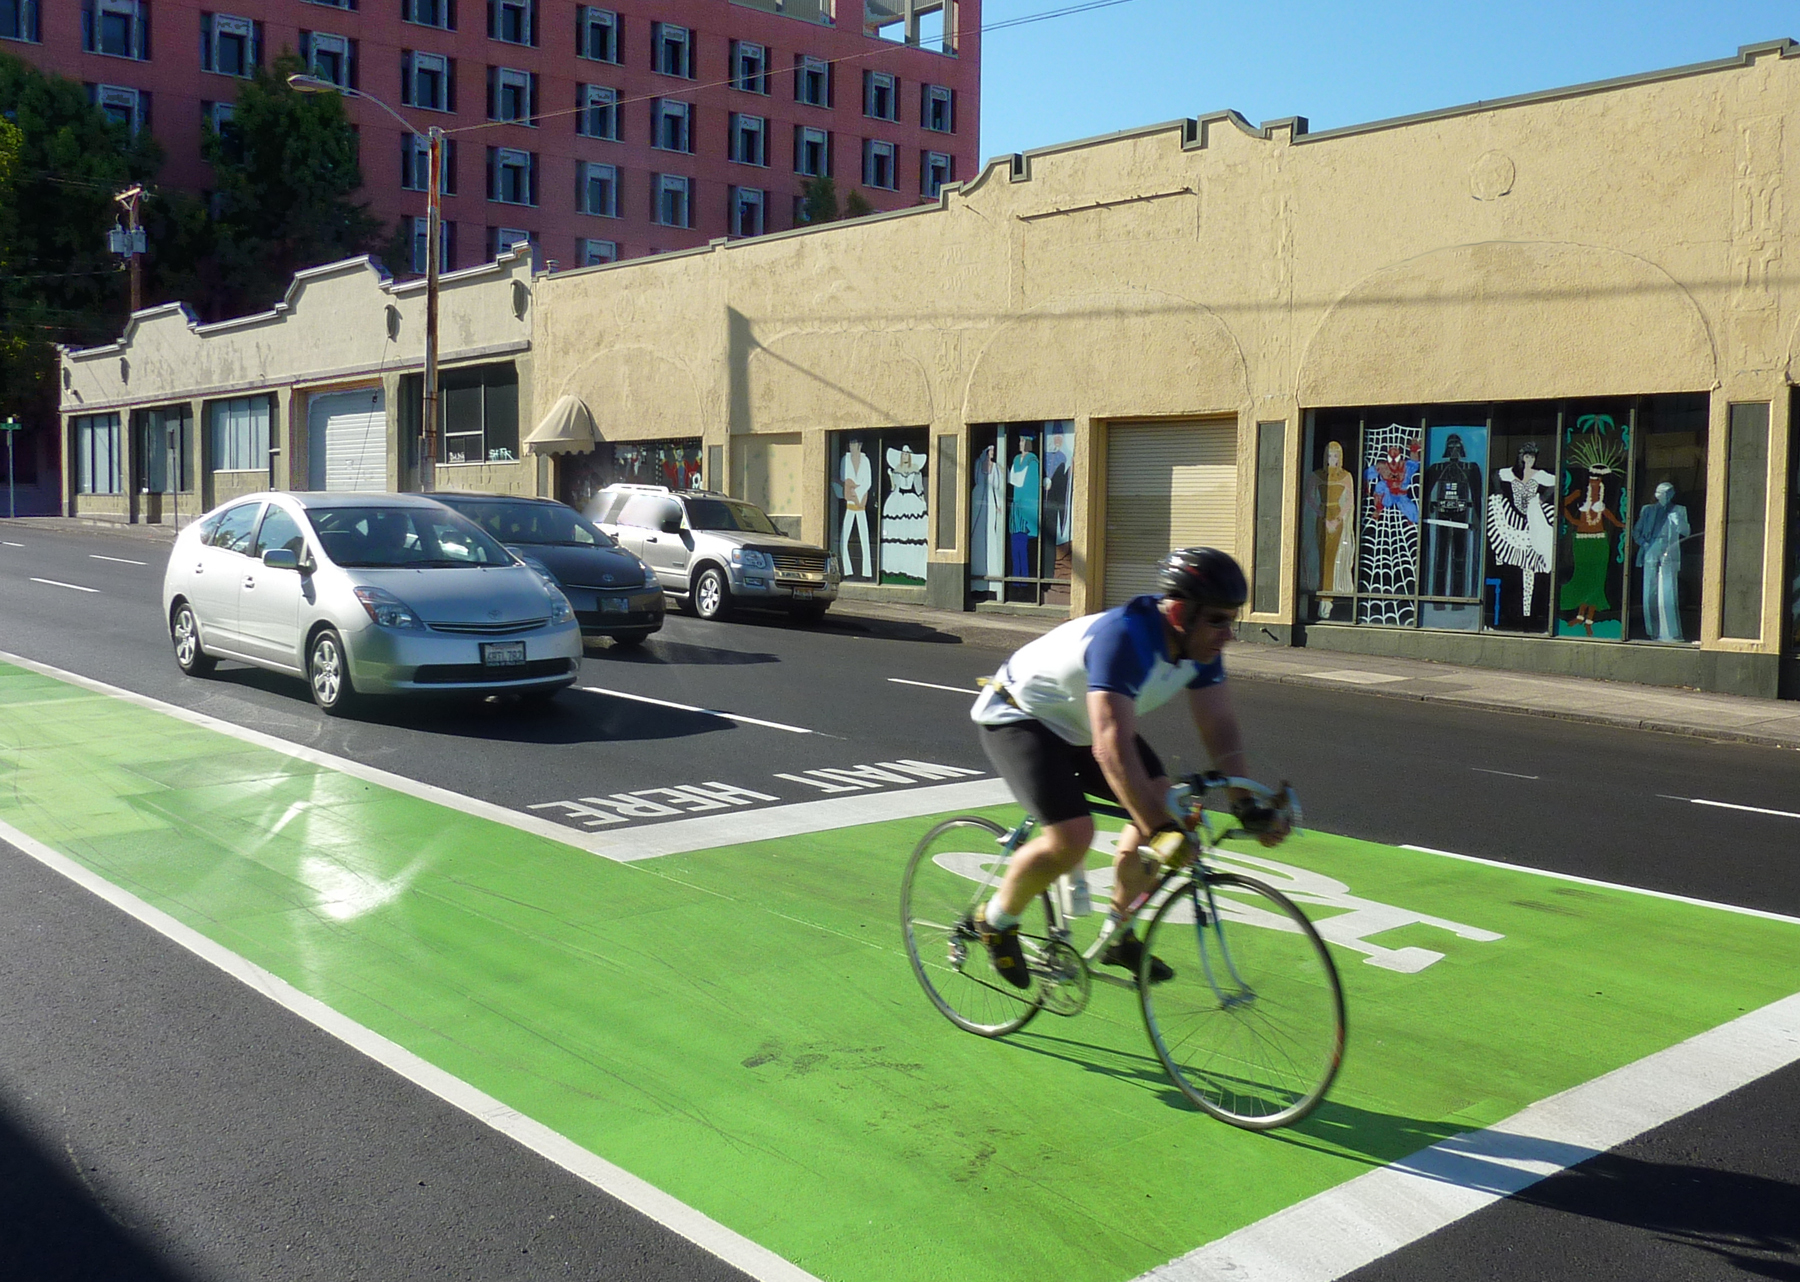 Bikes Portland Oregon Bike boxes may soon be updated